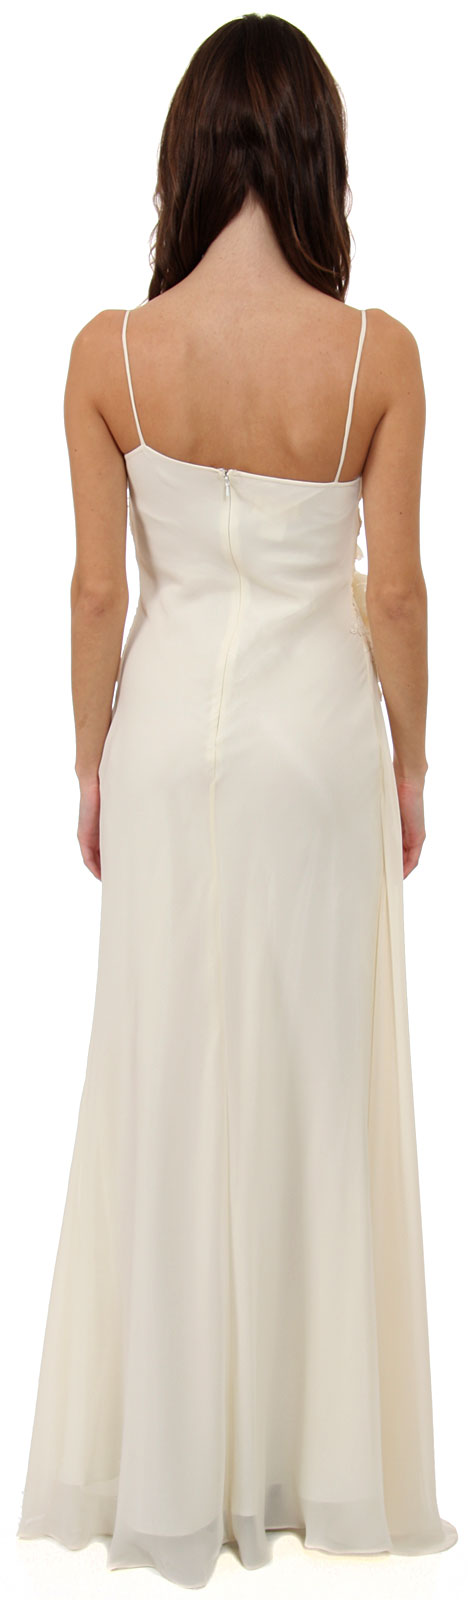 Image of Asymmetric Top Floral And Sheered Formal  dress back in Ivory